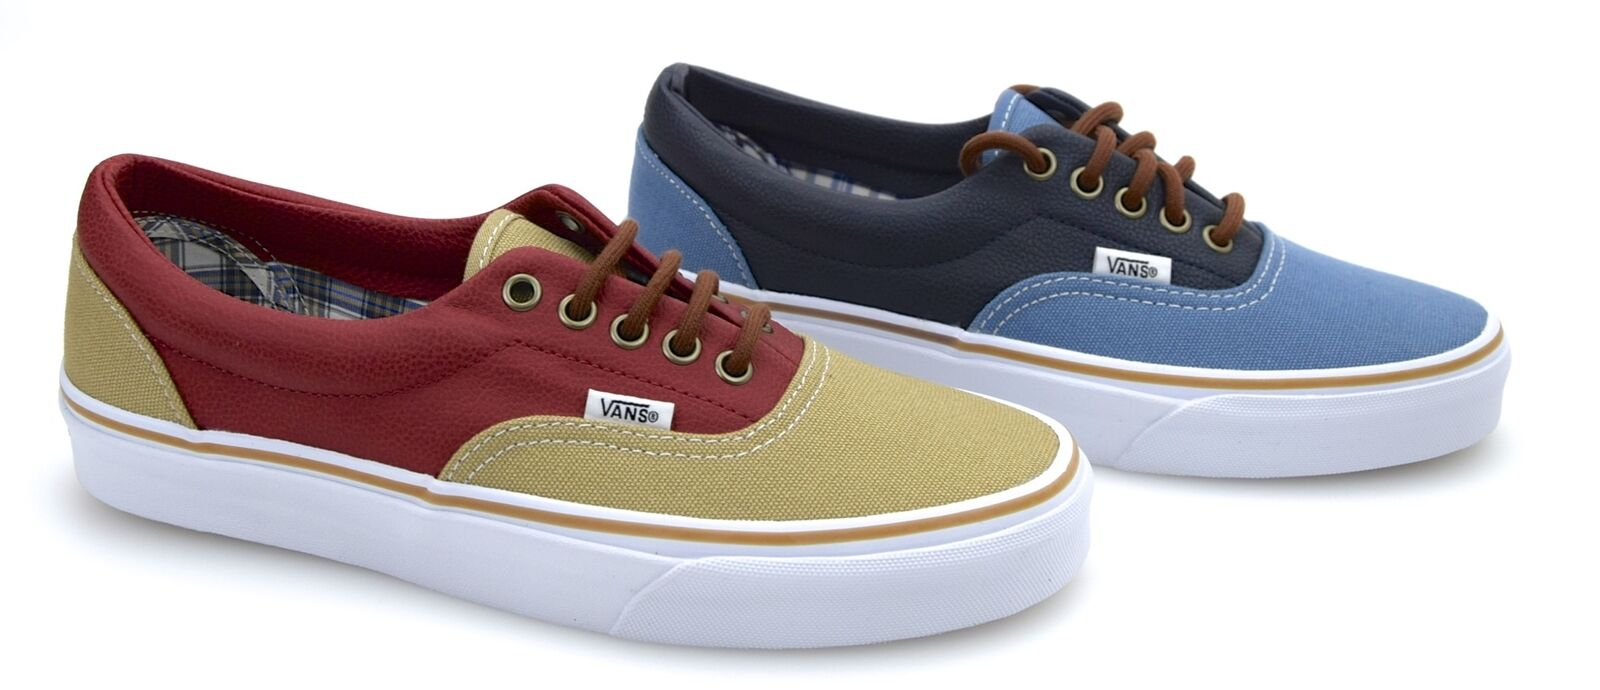 VANS MAN SNEAKER SHOES CASUAL FREE TIME CANVAS RUBBER CODE ERA Y6XFH1 - Y6XFH0